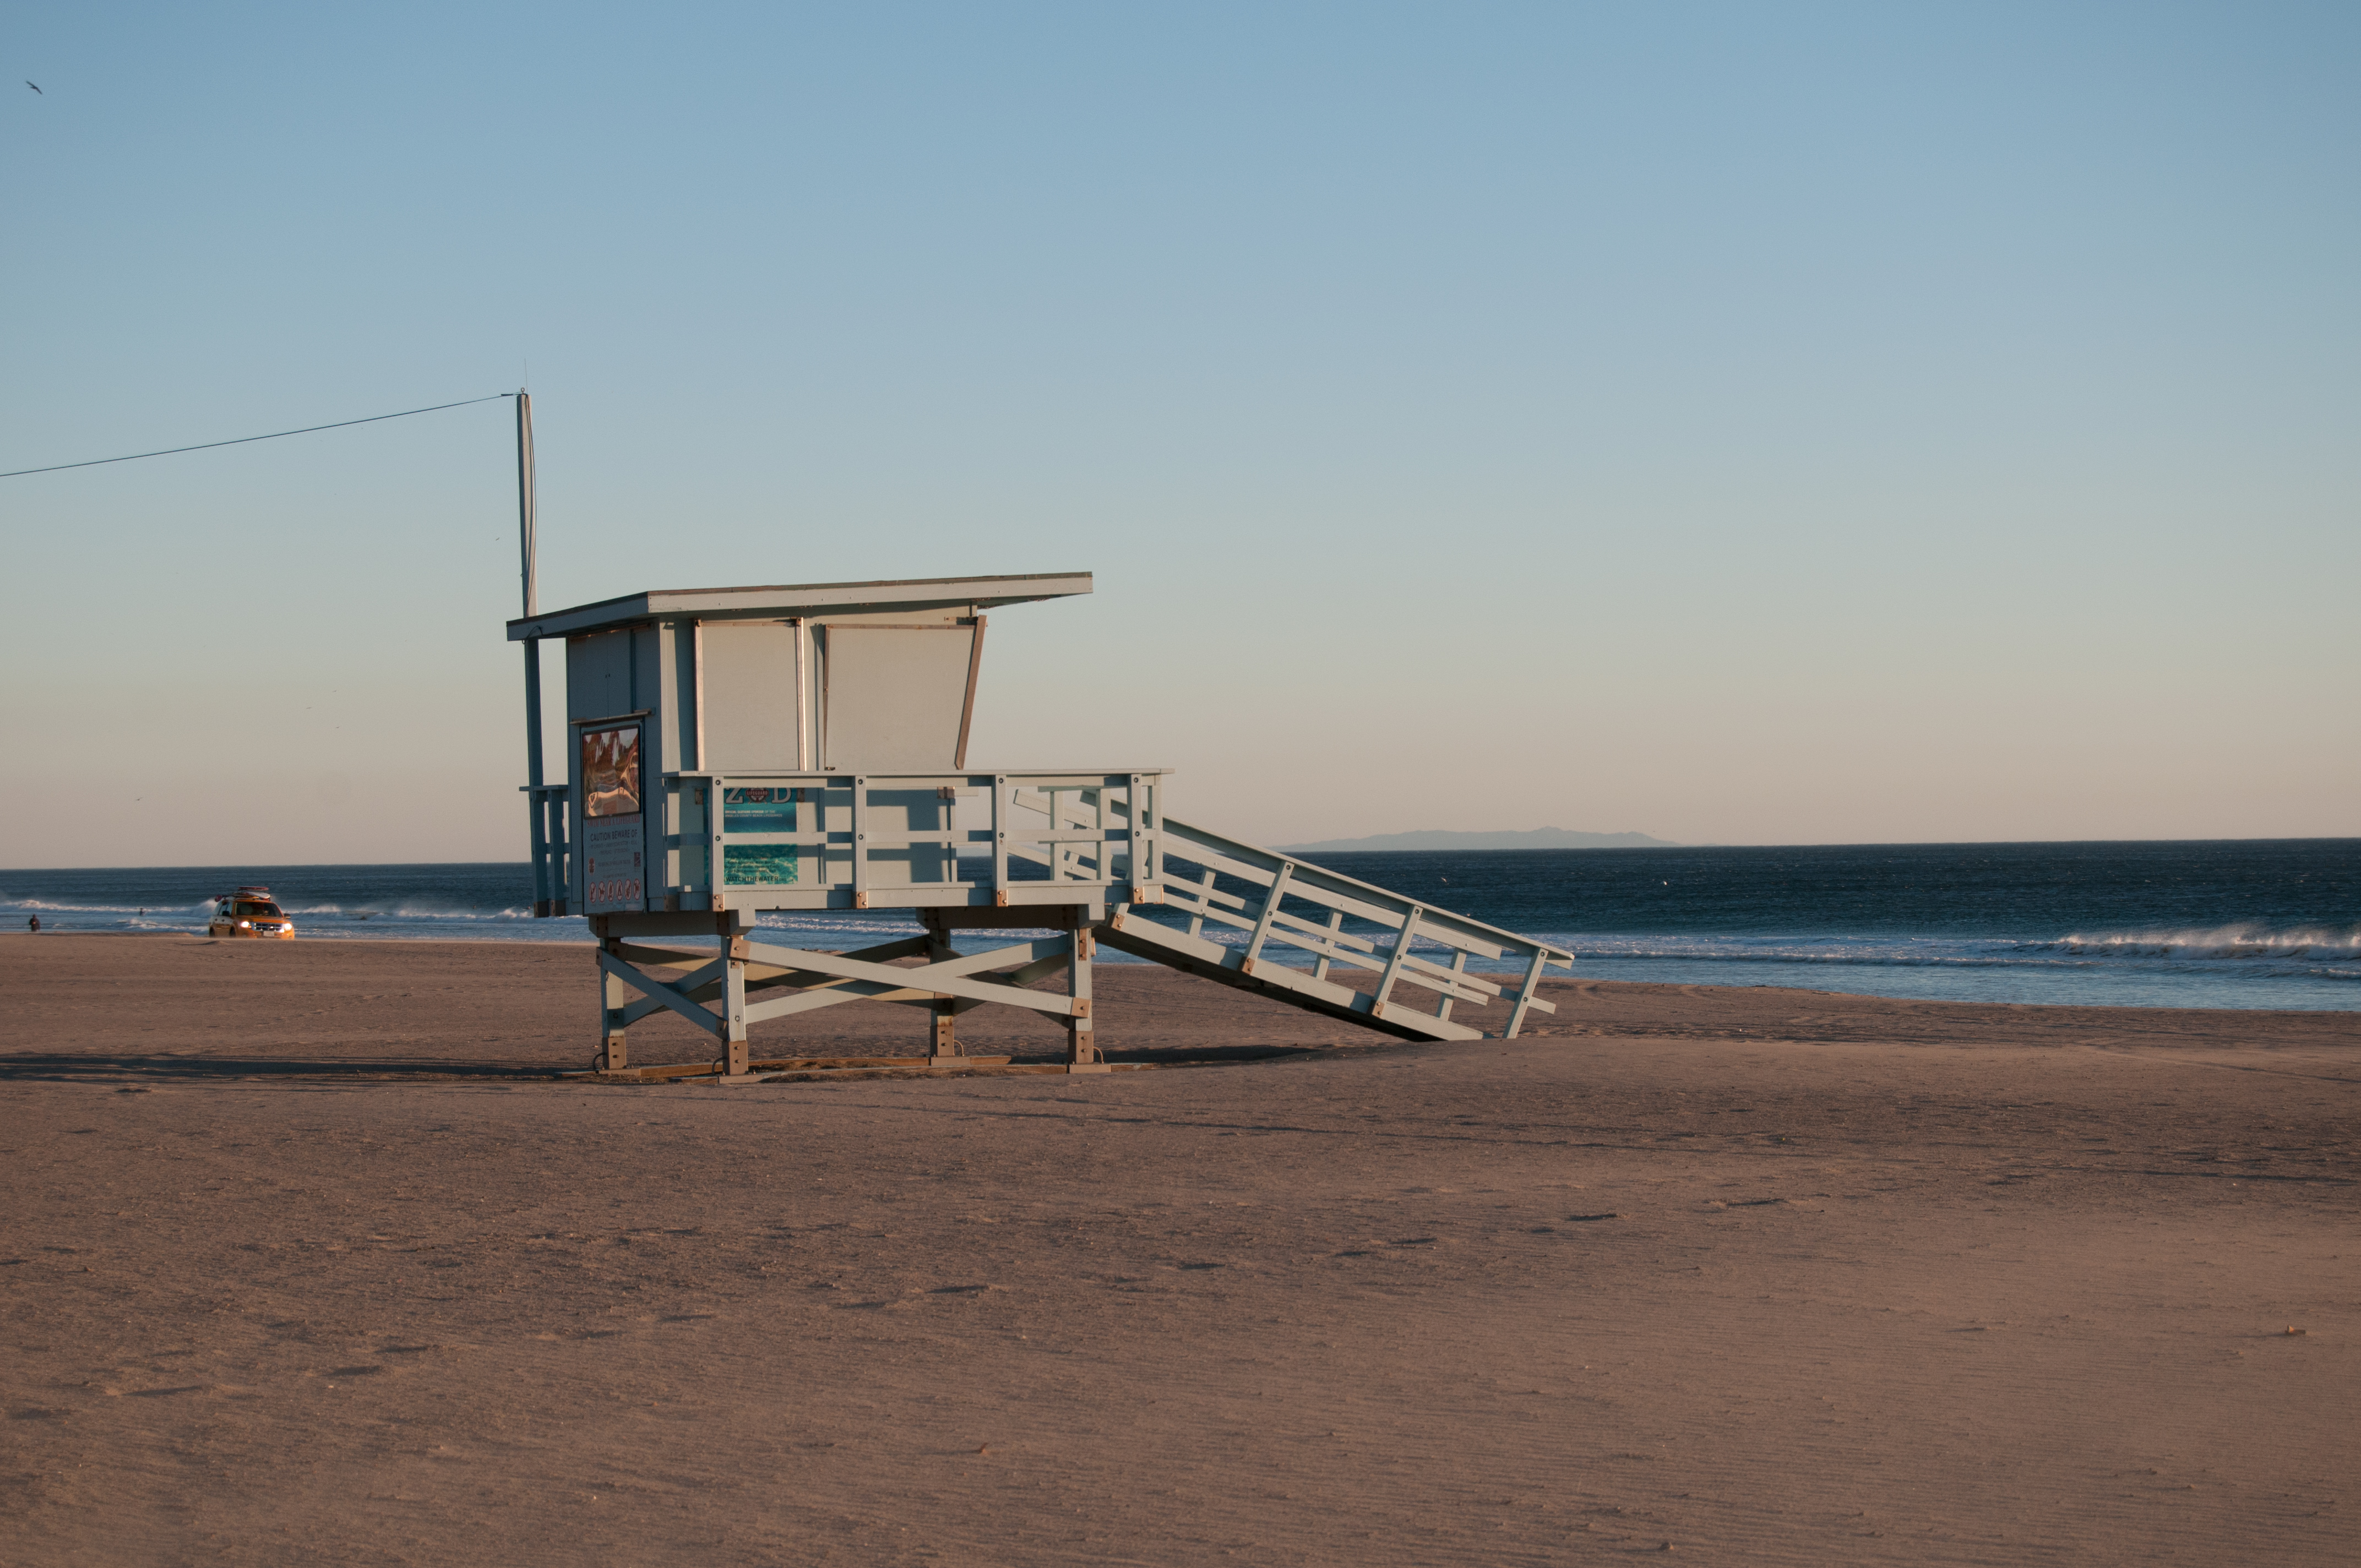 A 28-year-old swimmer died at Zuma beach on Sunday